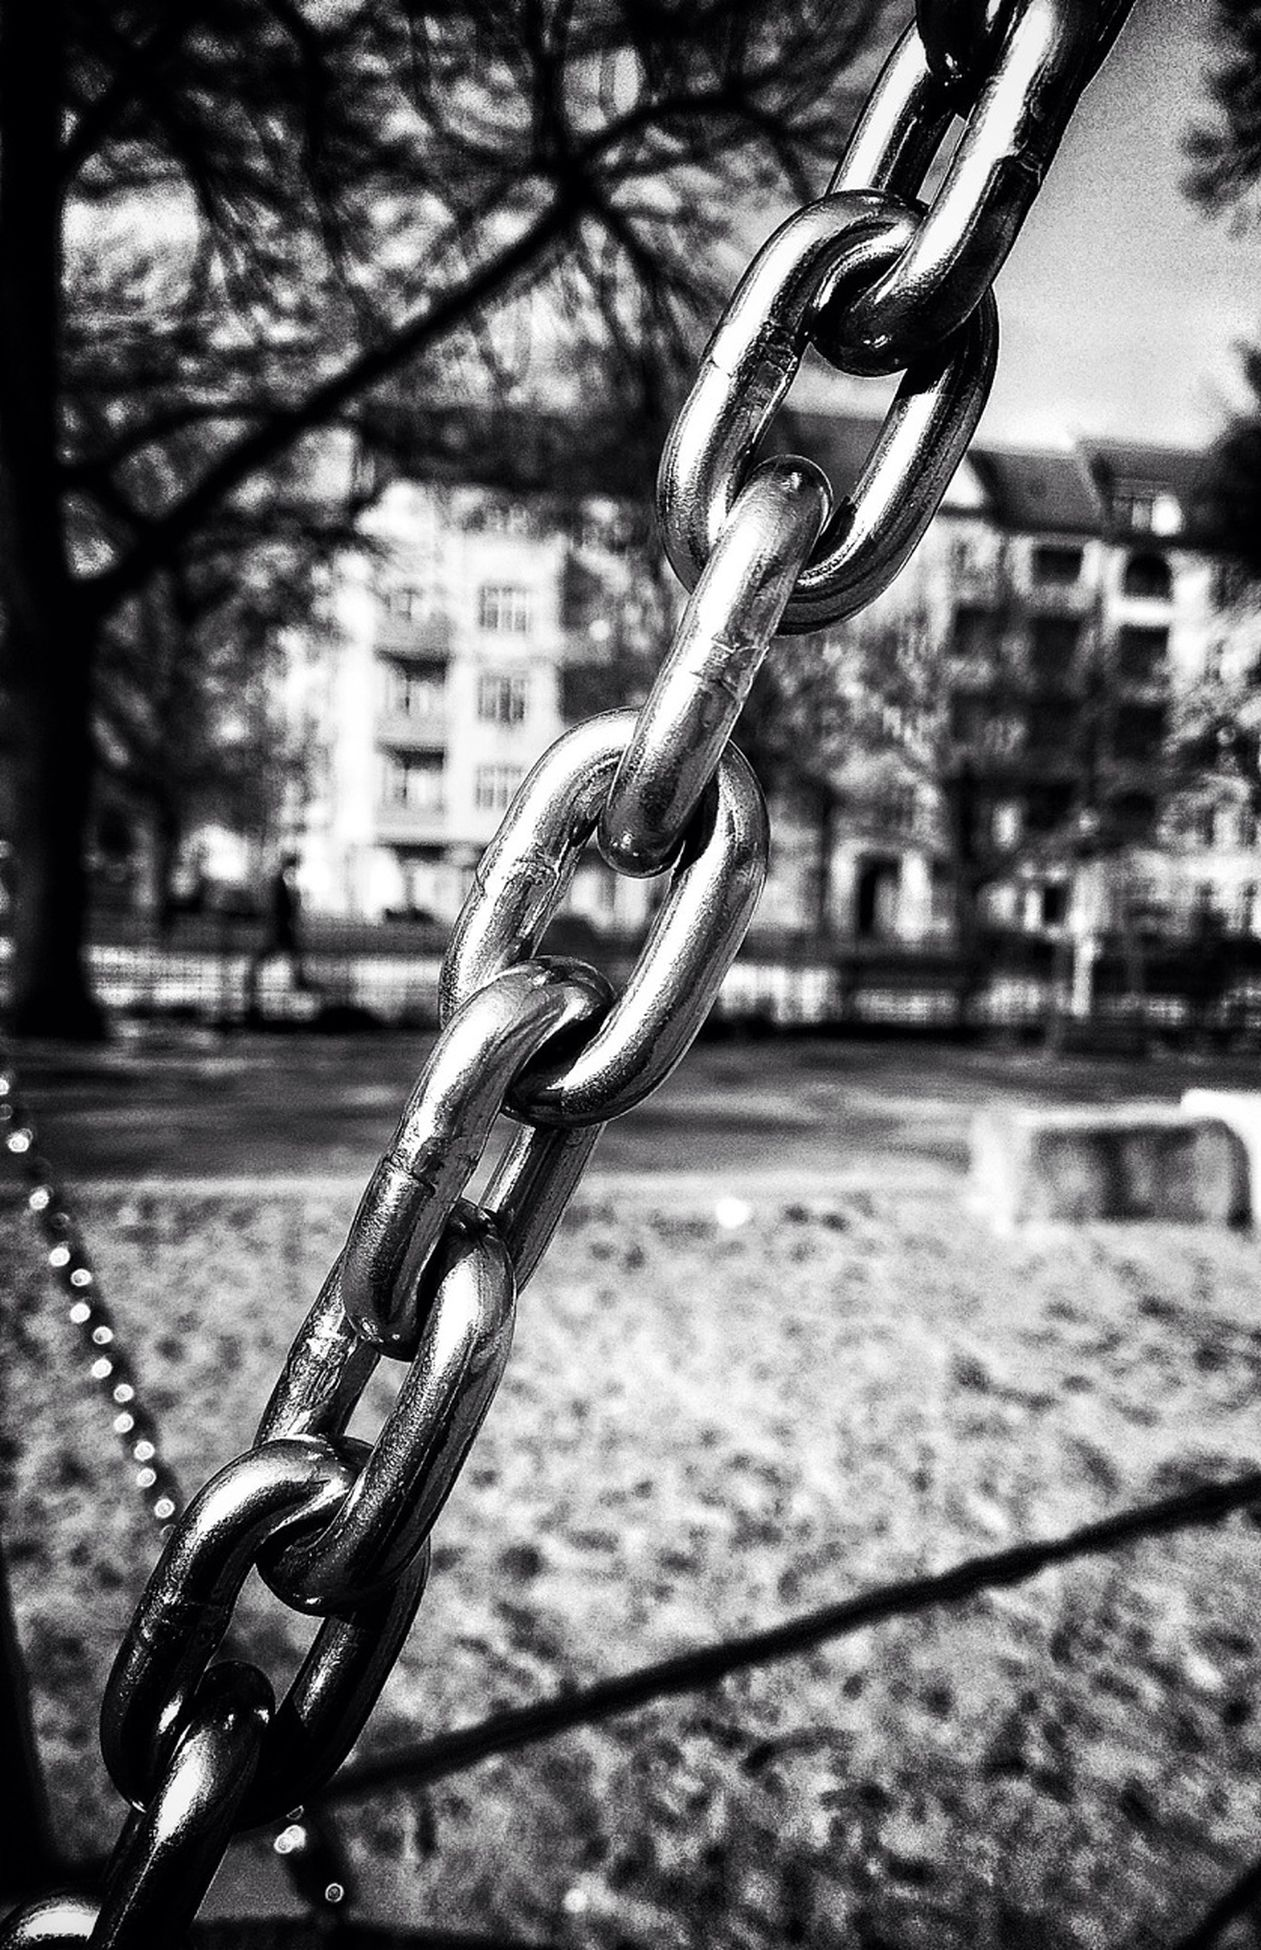 chain, metal, focus on foreground, close-up, rusty, strength, metallic, selective focus, no people, protection, detail, security, hanging, part of, old, safety, protection, destruction, deterioration, obsolete